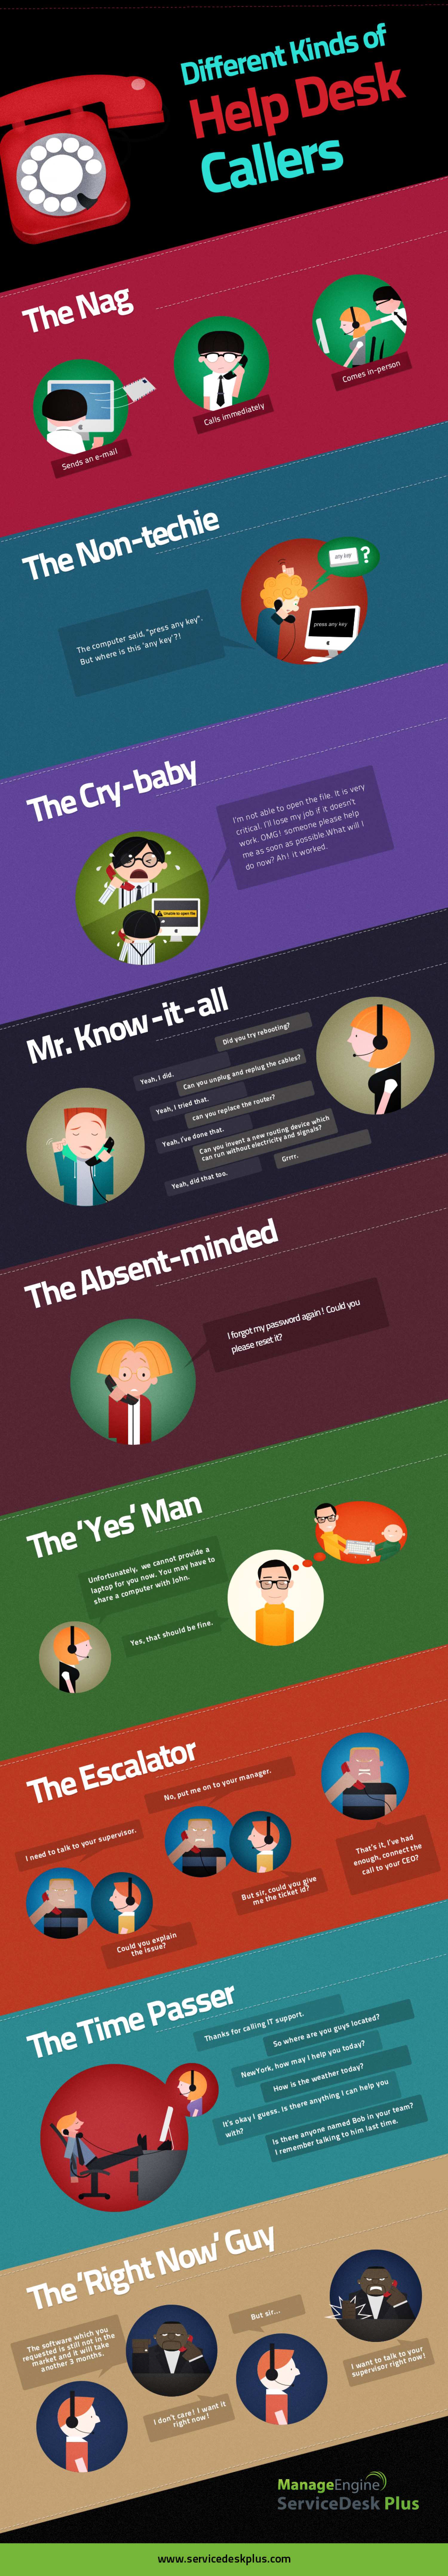 Different kinds of Help Desk Callers - Comic Strip Infographic